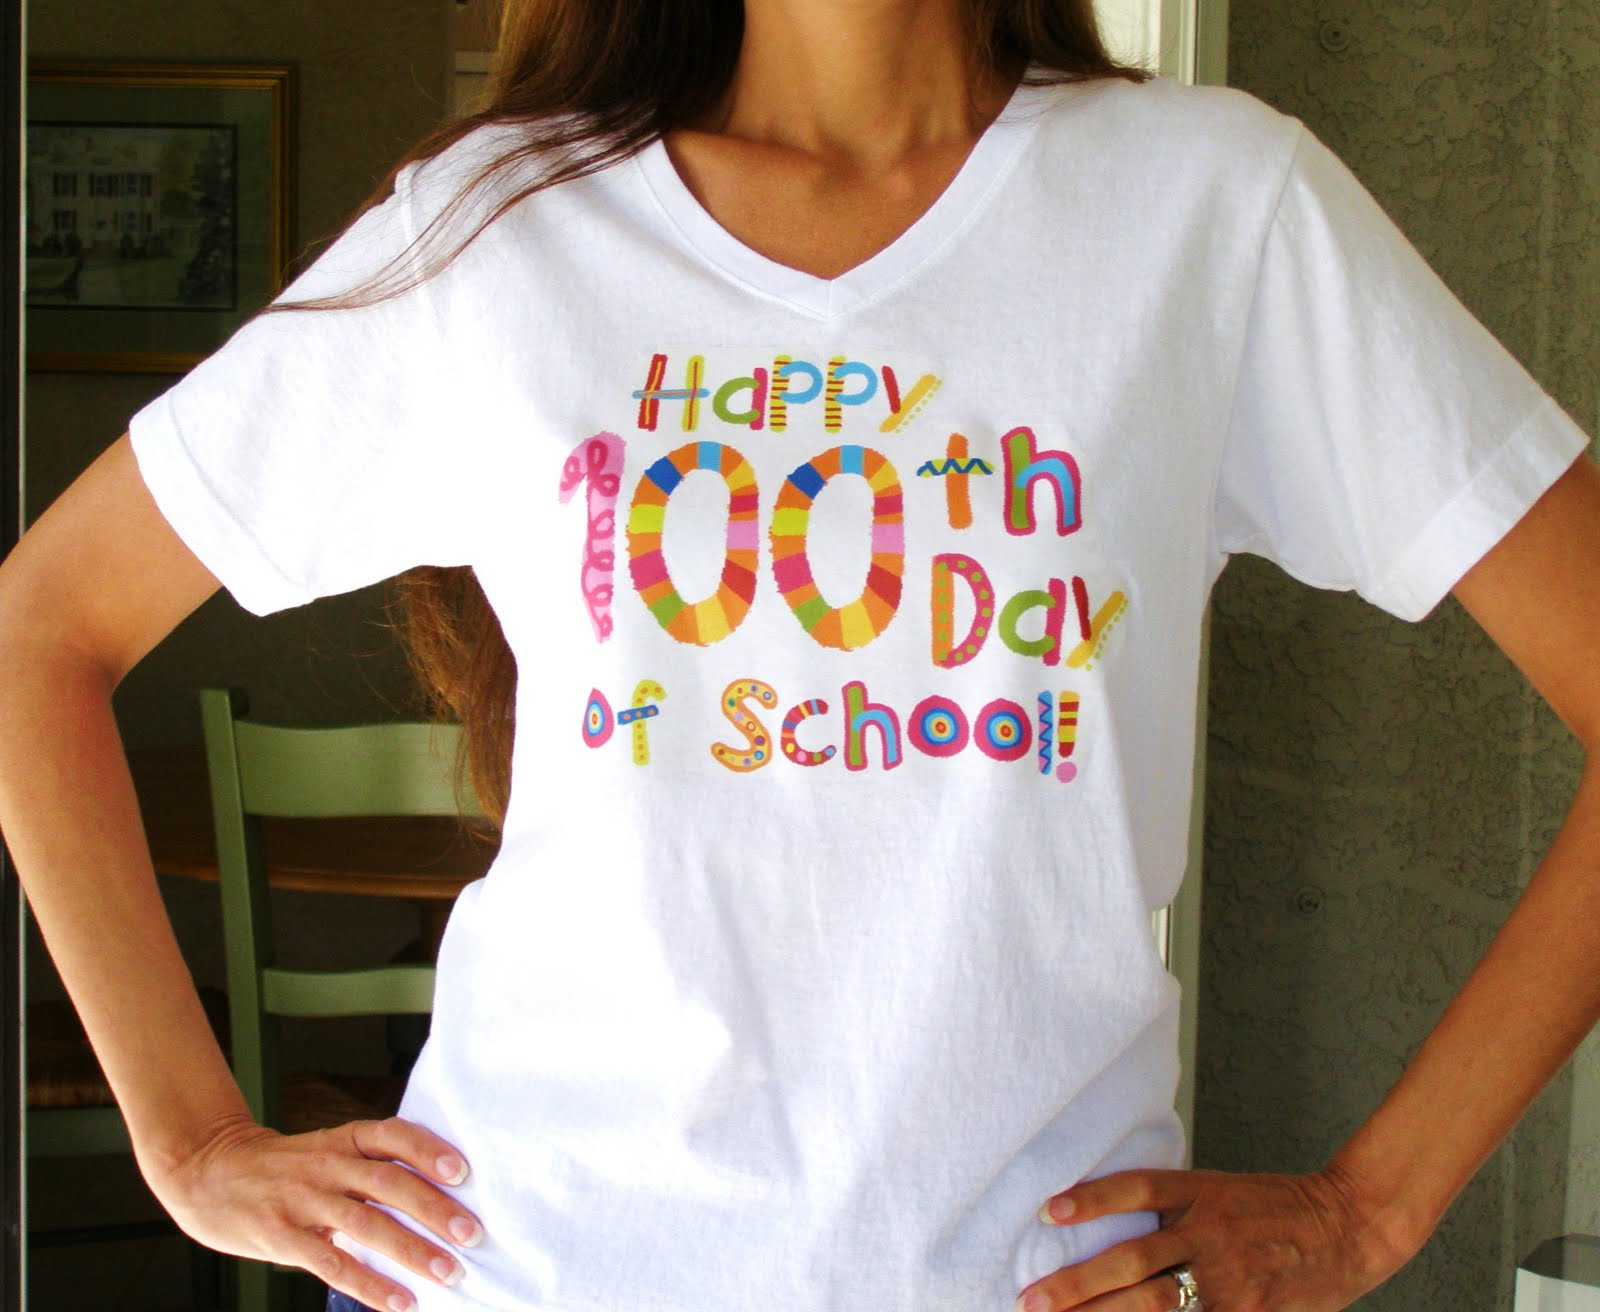 100th Day of School Activities! It'll be here before you know it!